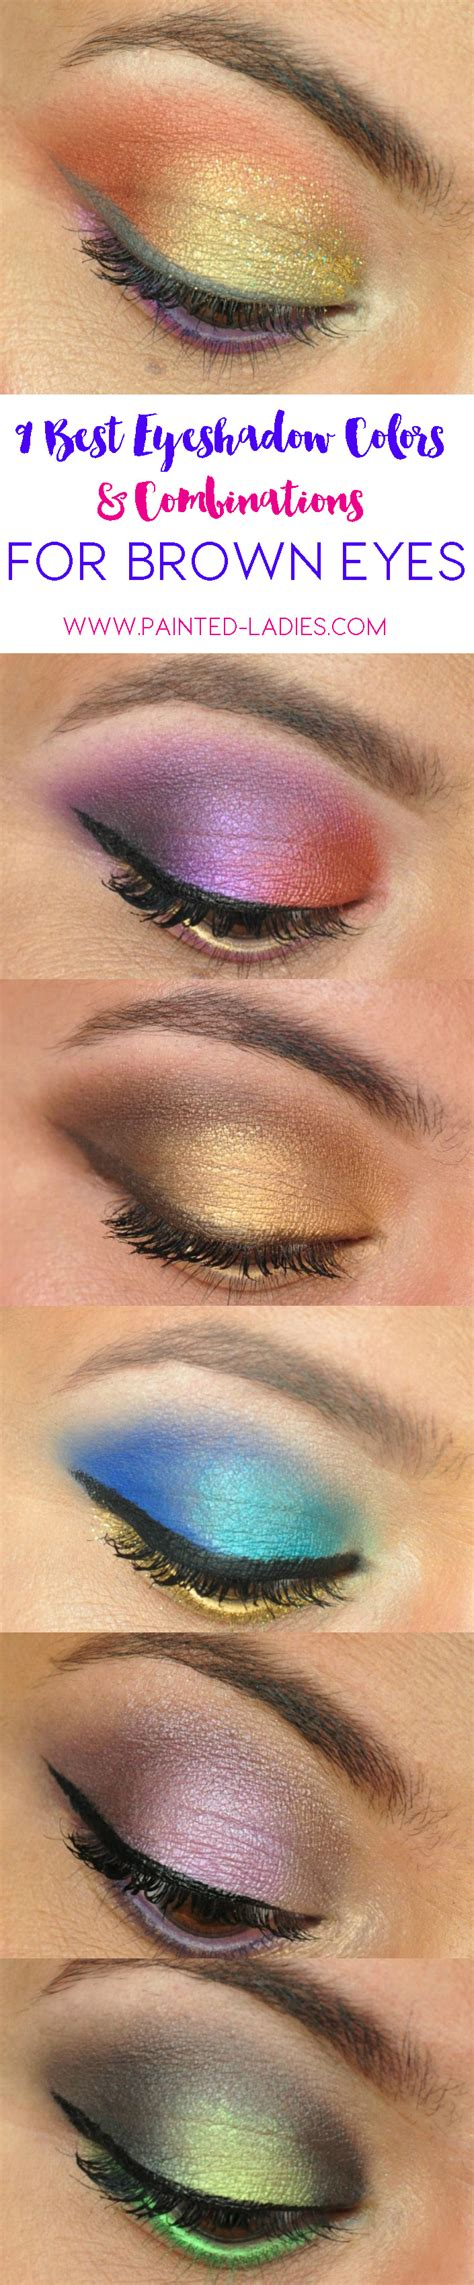 eyeshadow colors best eyeshadow colors and combinations for brown